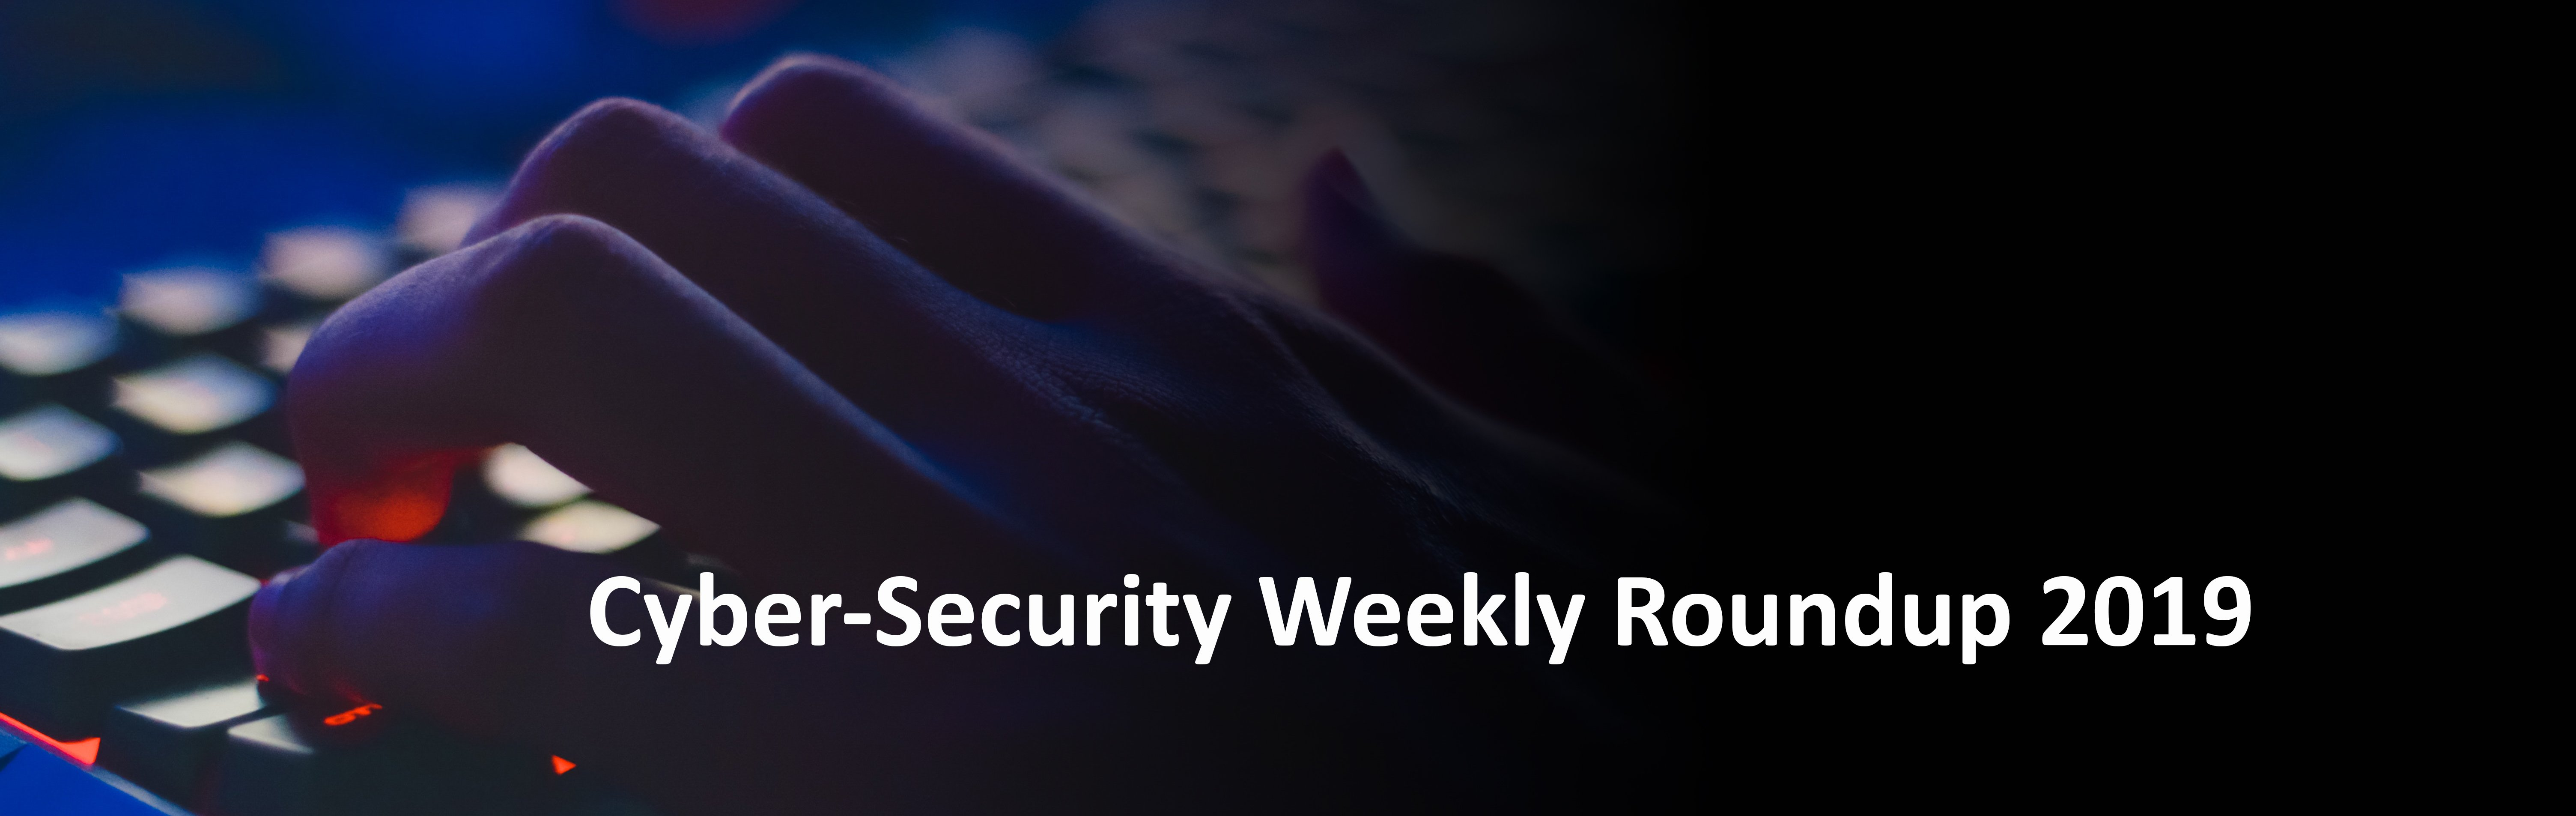 Cyber Attack Weekly Round Up Image - NEW